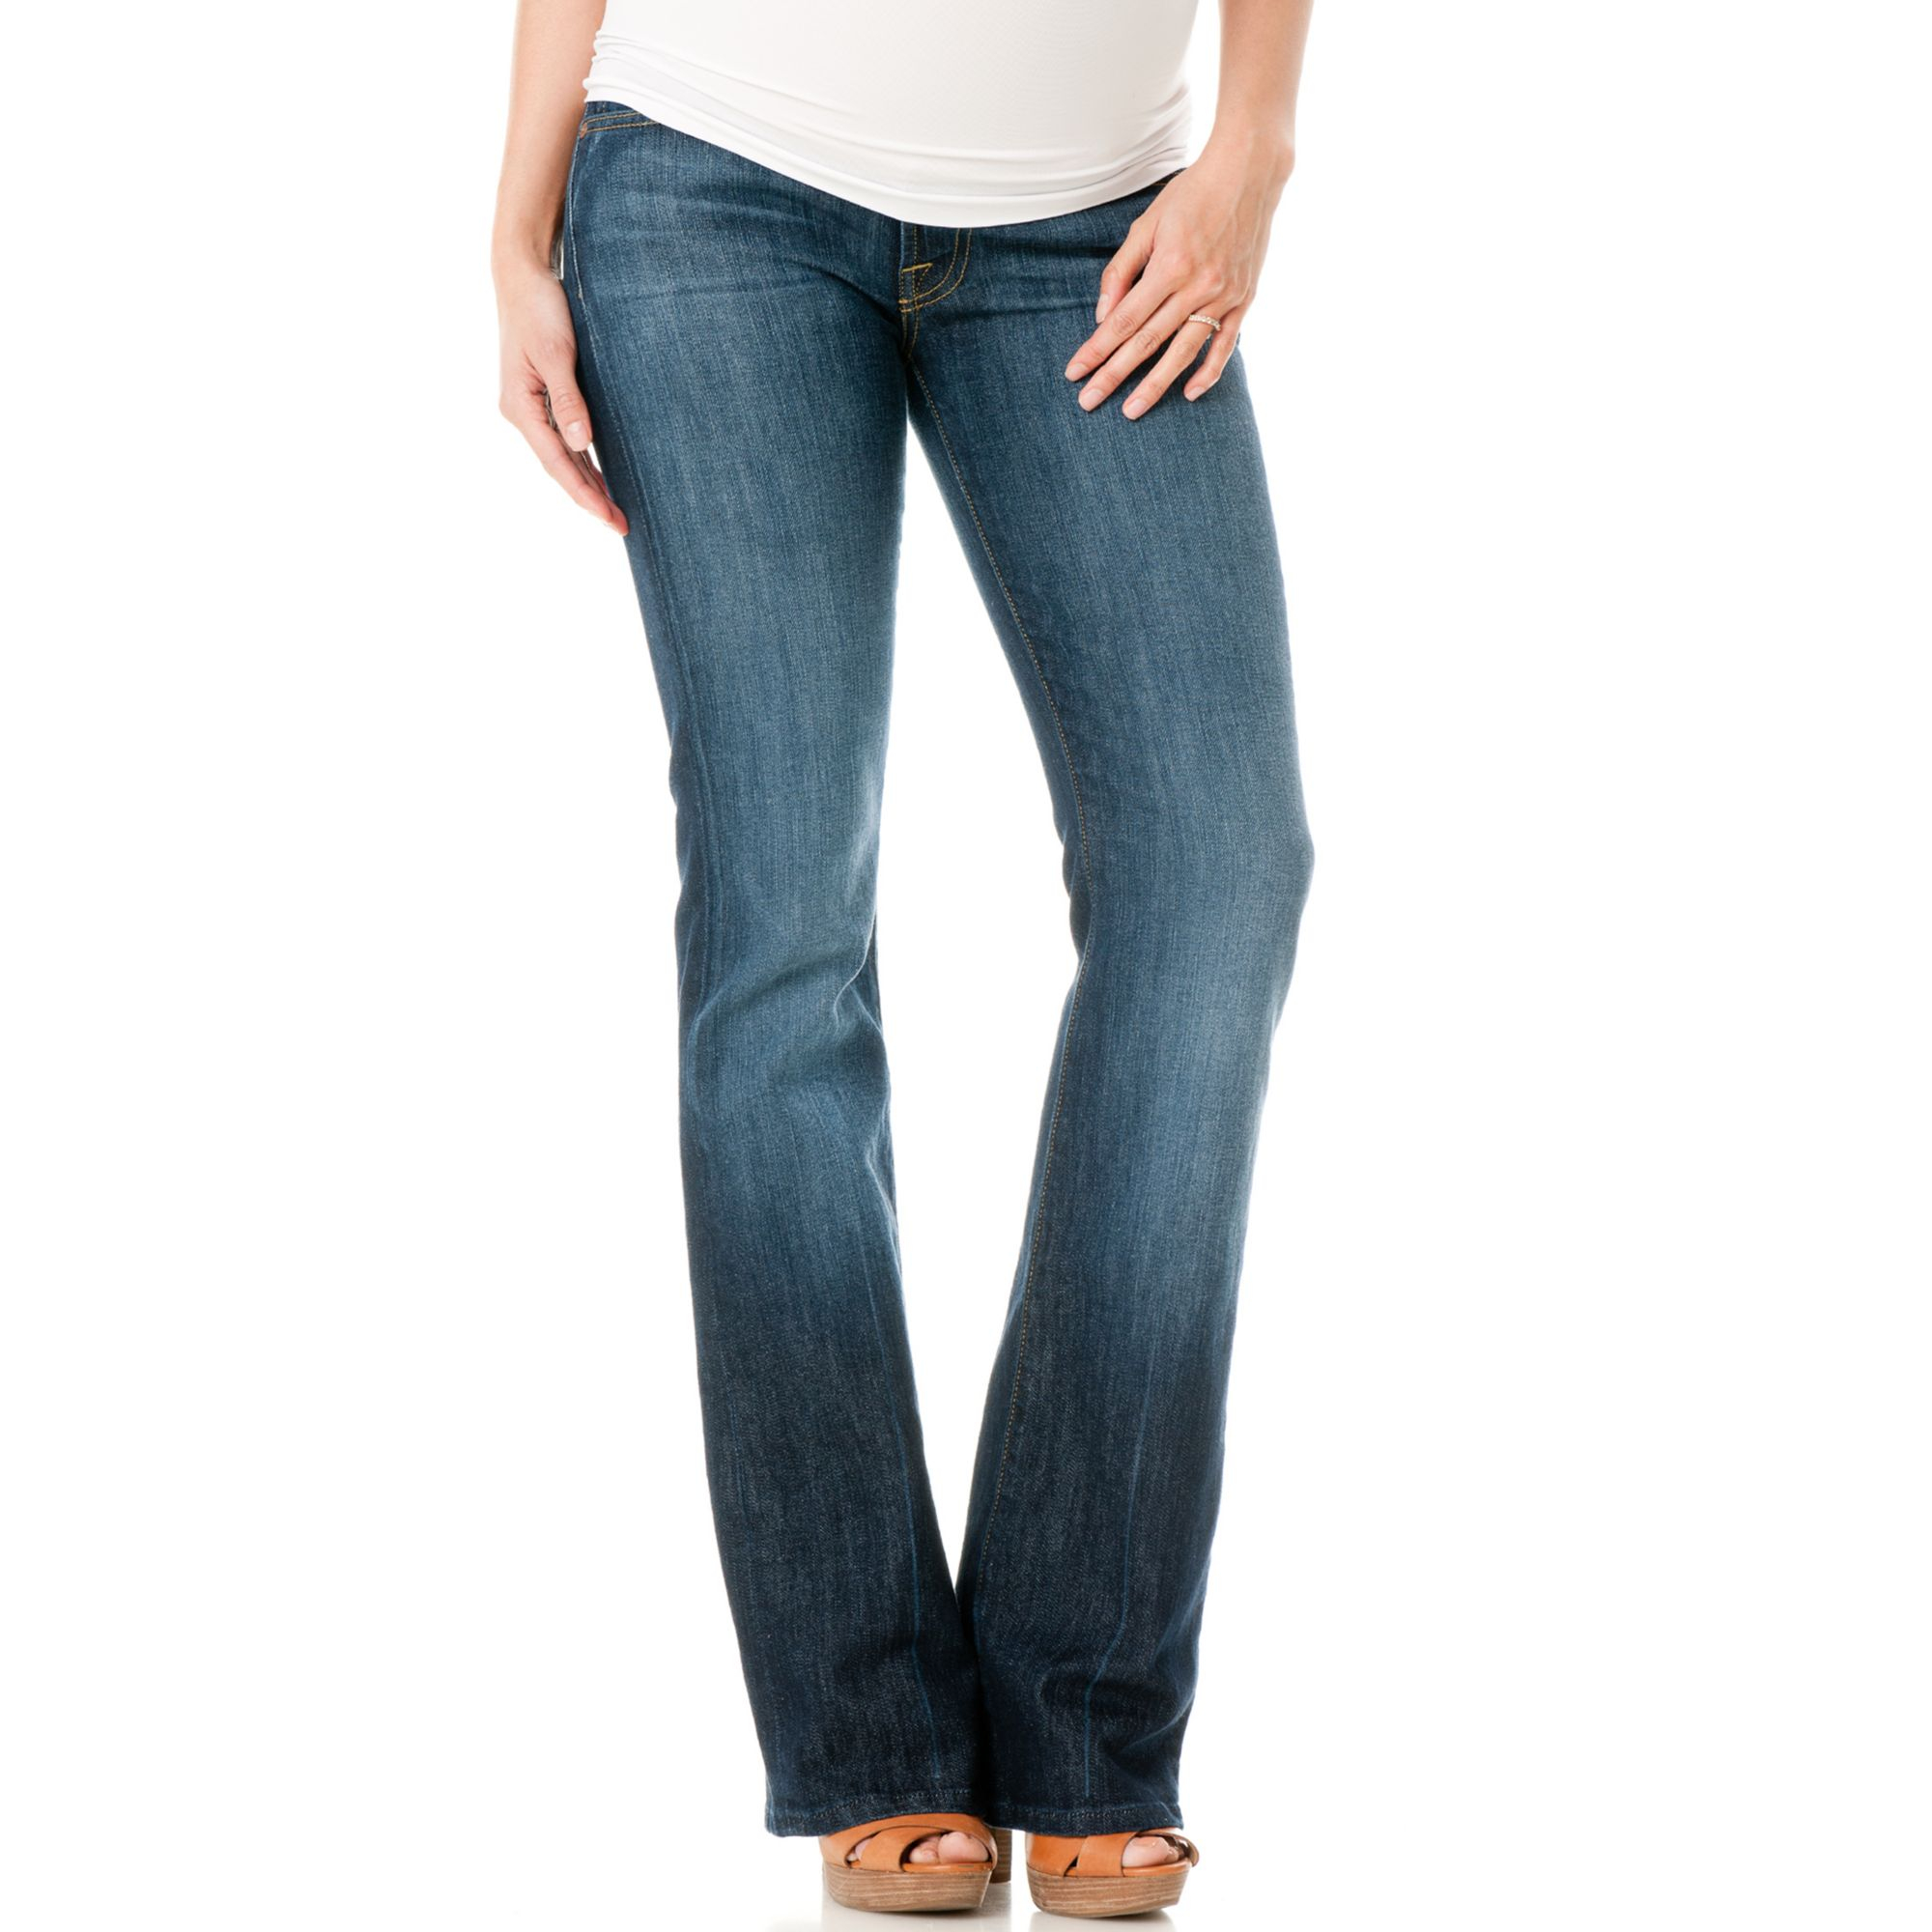 Shop Motherhood Maternity Petite Bootcut Maternity Jeans online at shopnow-vjpmehag.cf Crafted with a Secret Fit Belly® for coverage and support, these petite bootcut jeans by Indigo Blue for Motherhood Maternity are an absolute must for the mom-to-be/5(9).